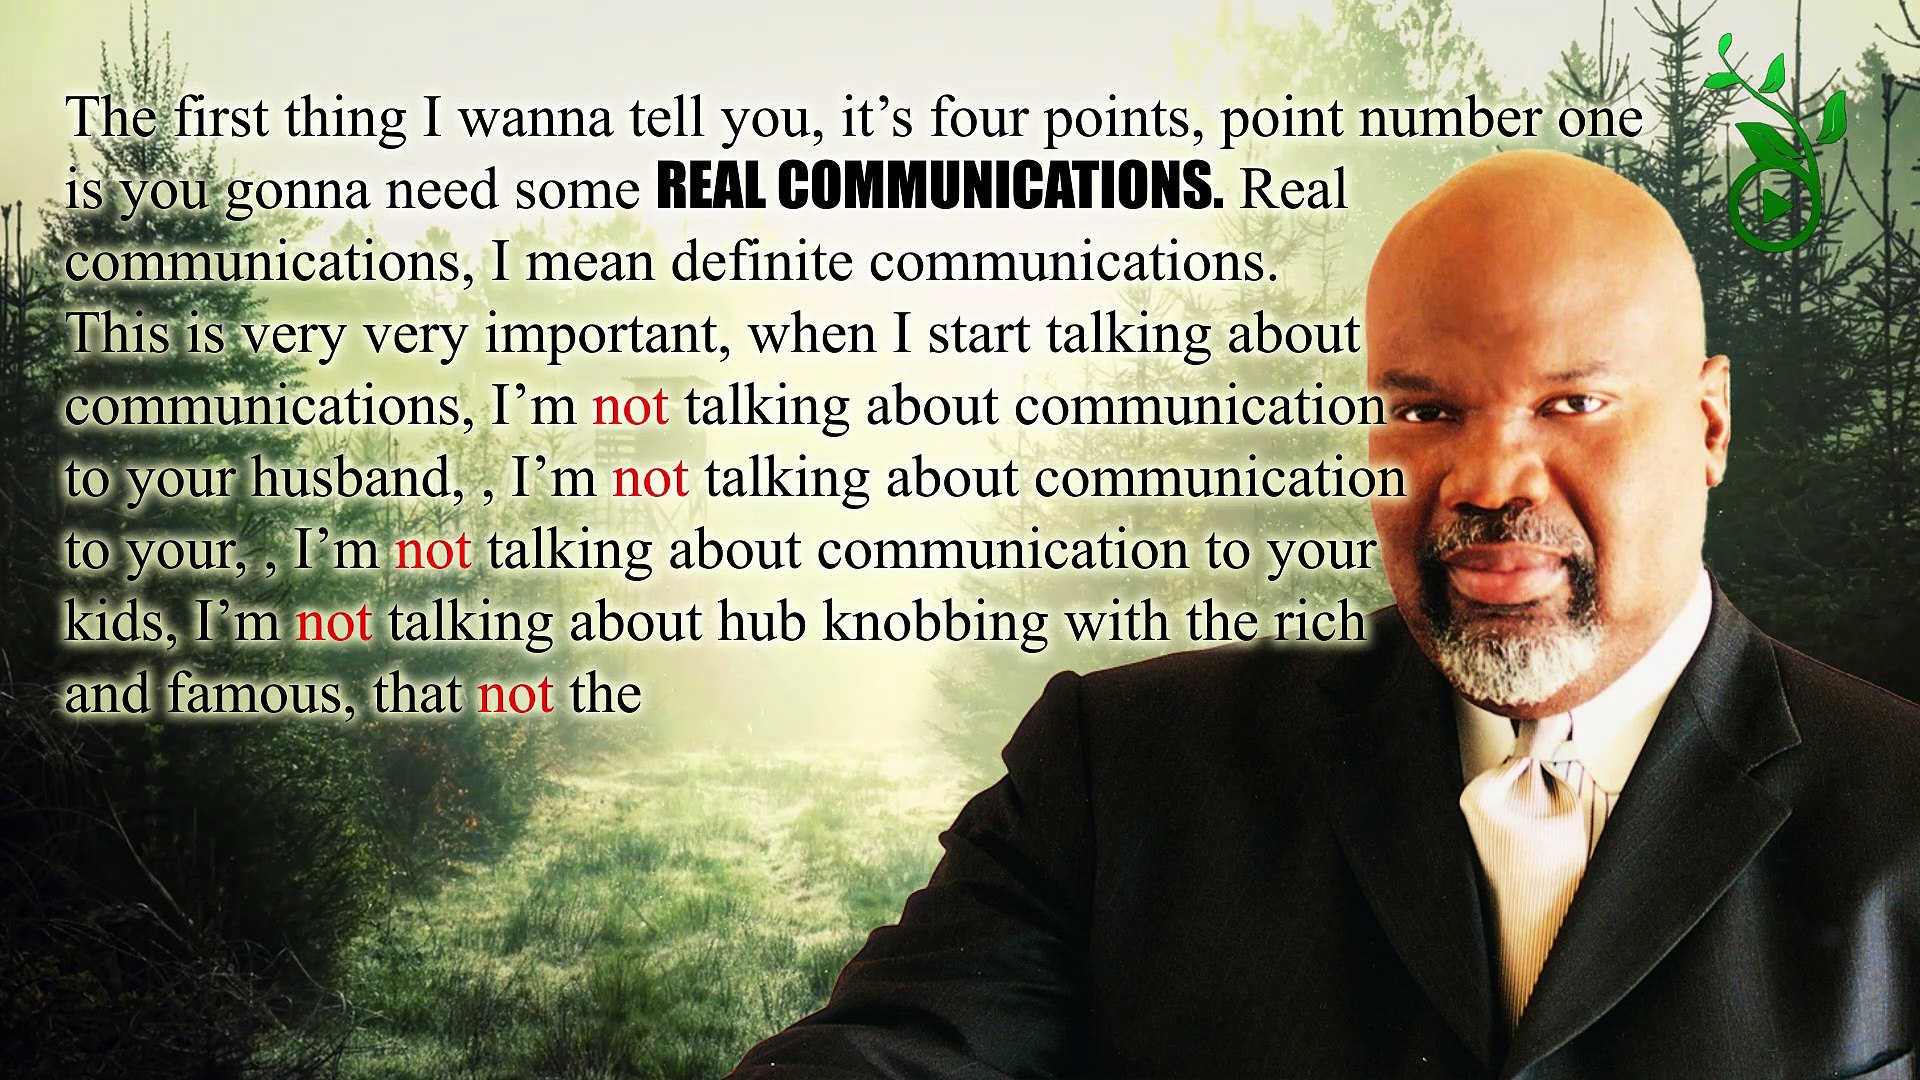 TD Jakes- Real Communications